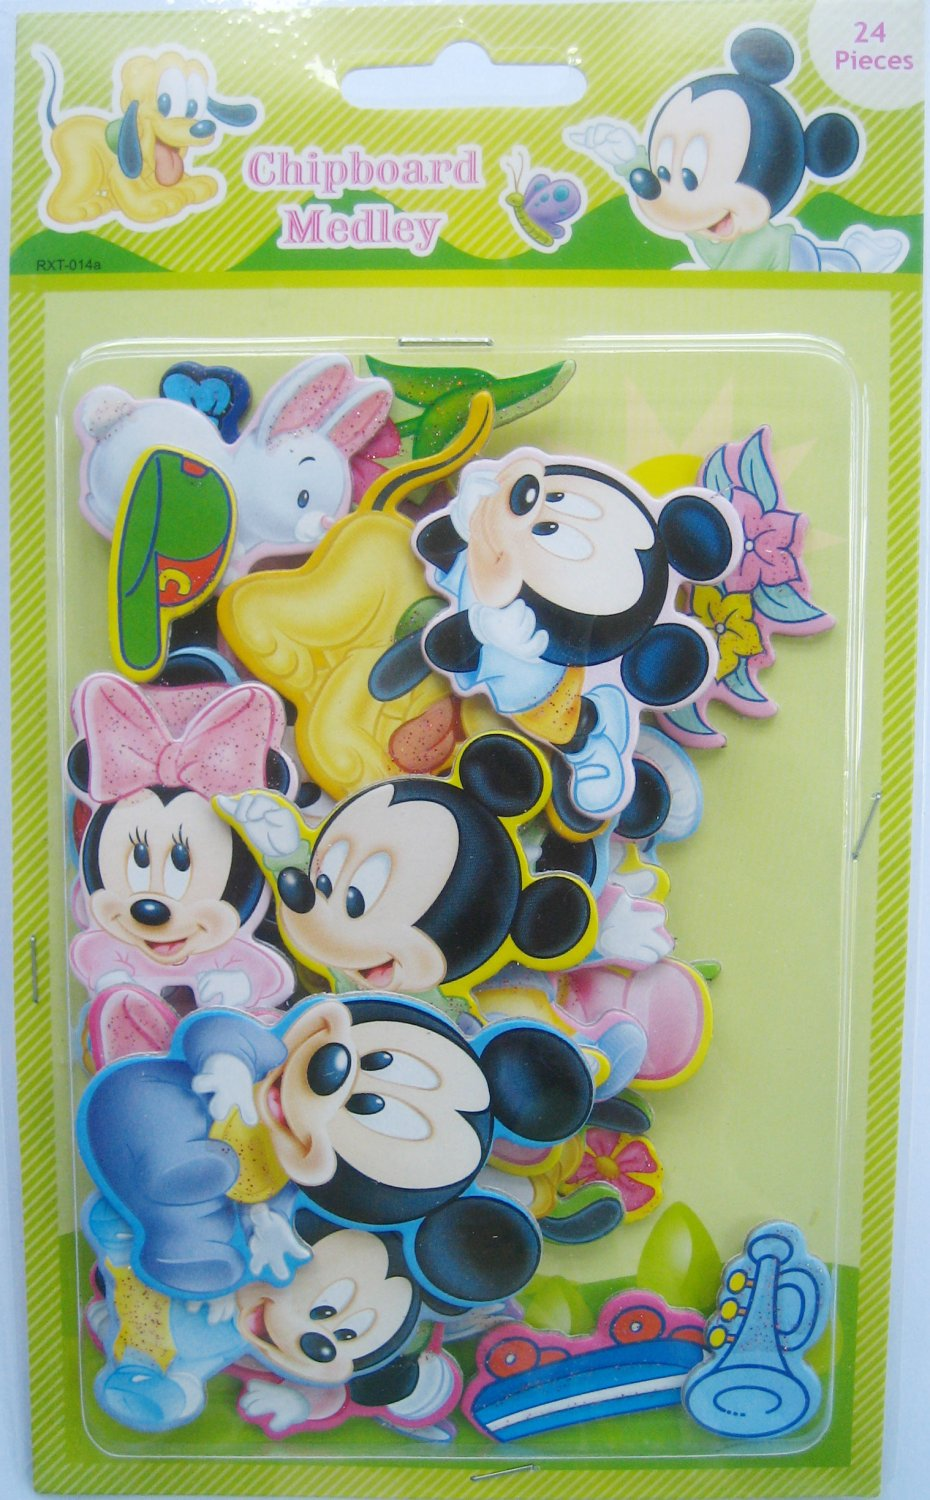 3D Chipboard Sticker Baby Mickey FREE SHIPPING + BUY ANY 2 FREE 1